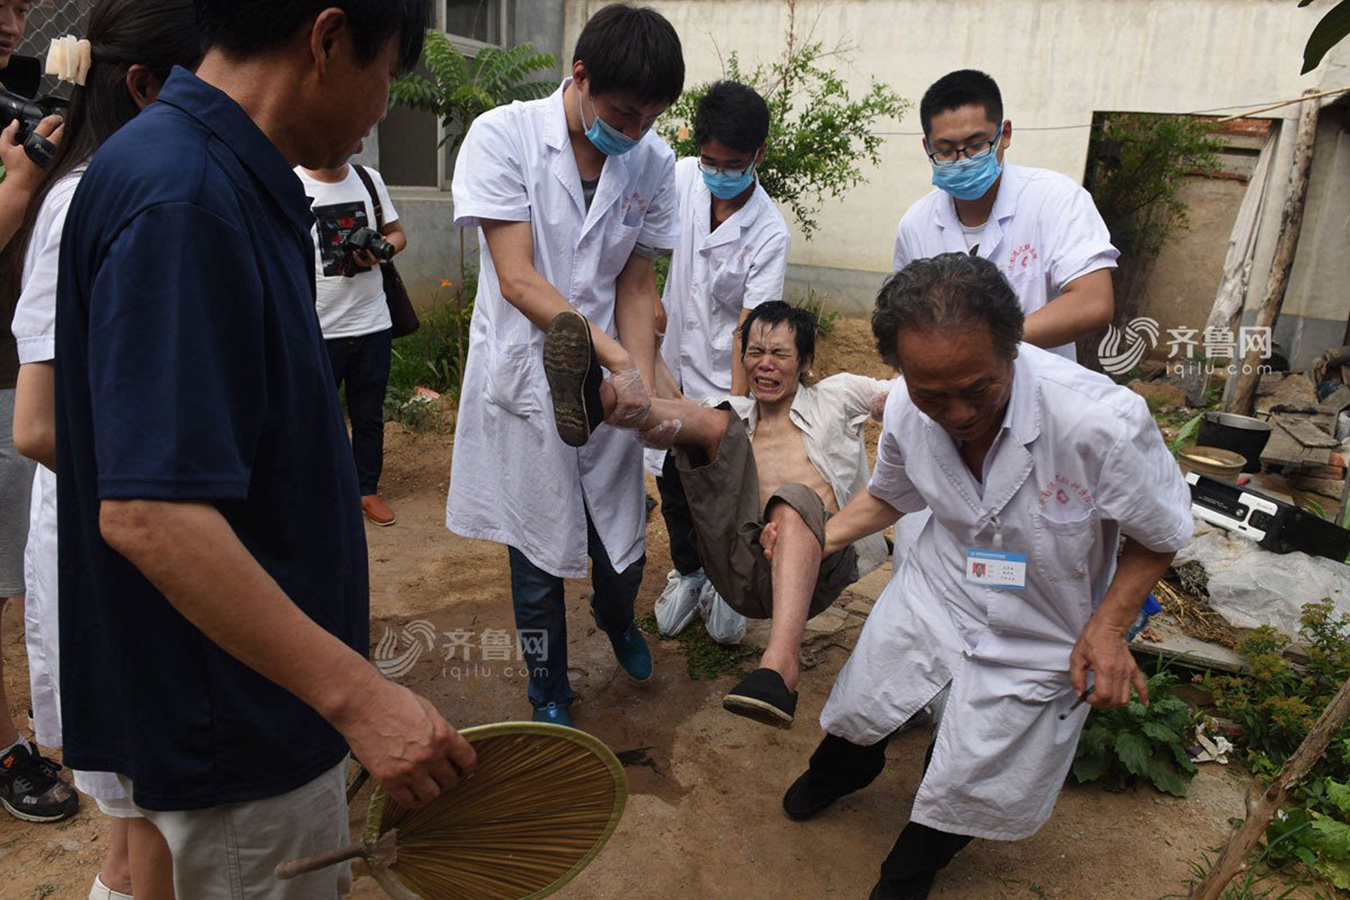 Doctors carry an unchained patient to the hospital while he is kicking and screaming. Photo by Qilu Net. http://yx.iqilu.com/2016/0623/2862679.shtml#10.